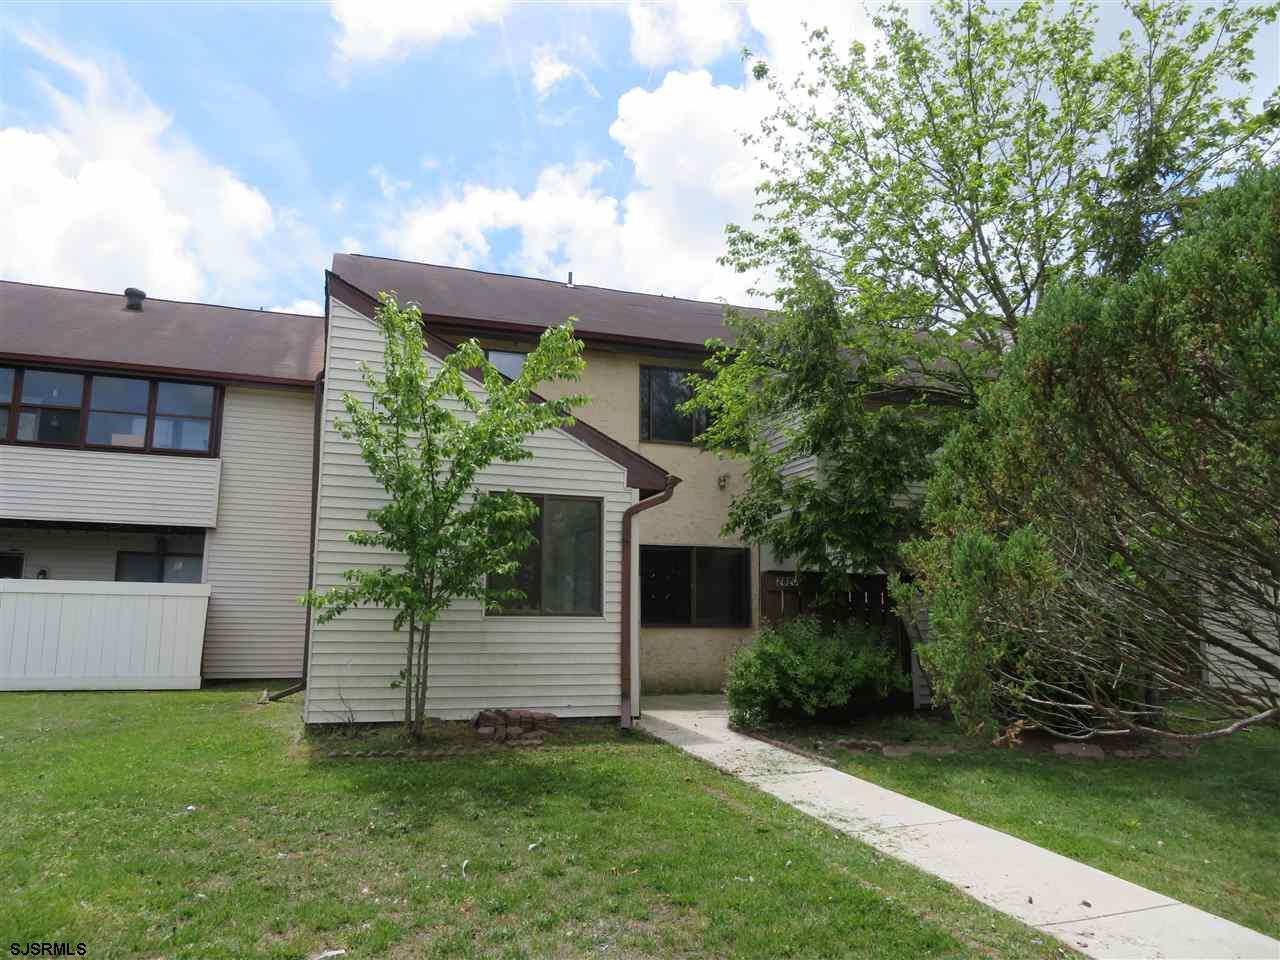 Spacious 2-story unit with 2 bedrooms, 1.5 baths and a den.  Private entrance with patio and storage